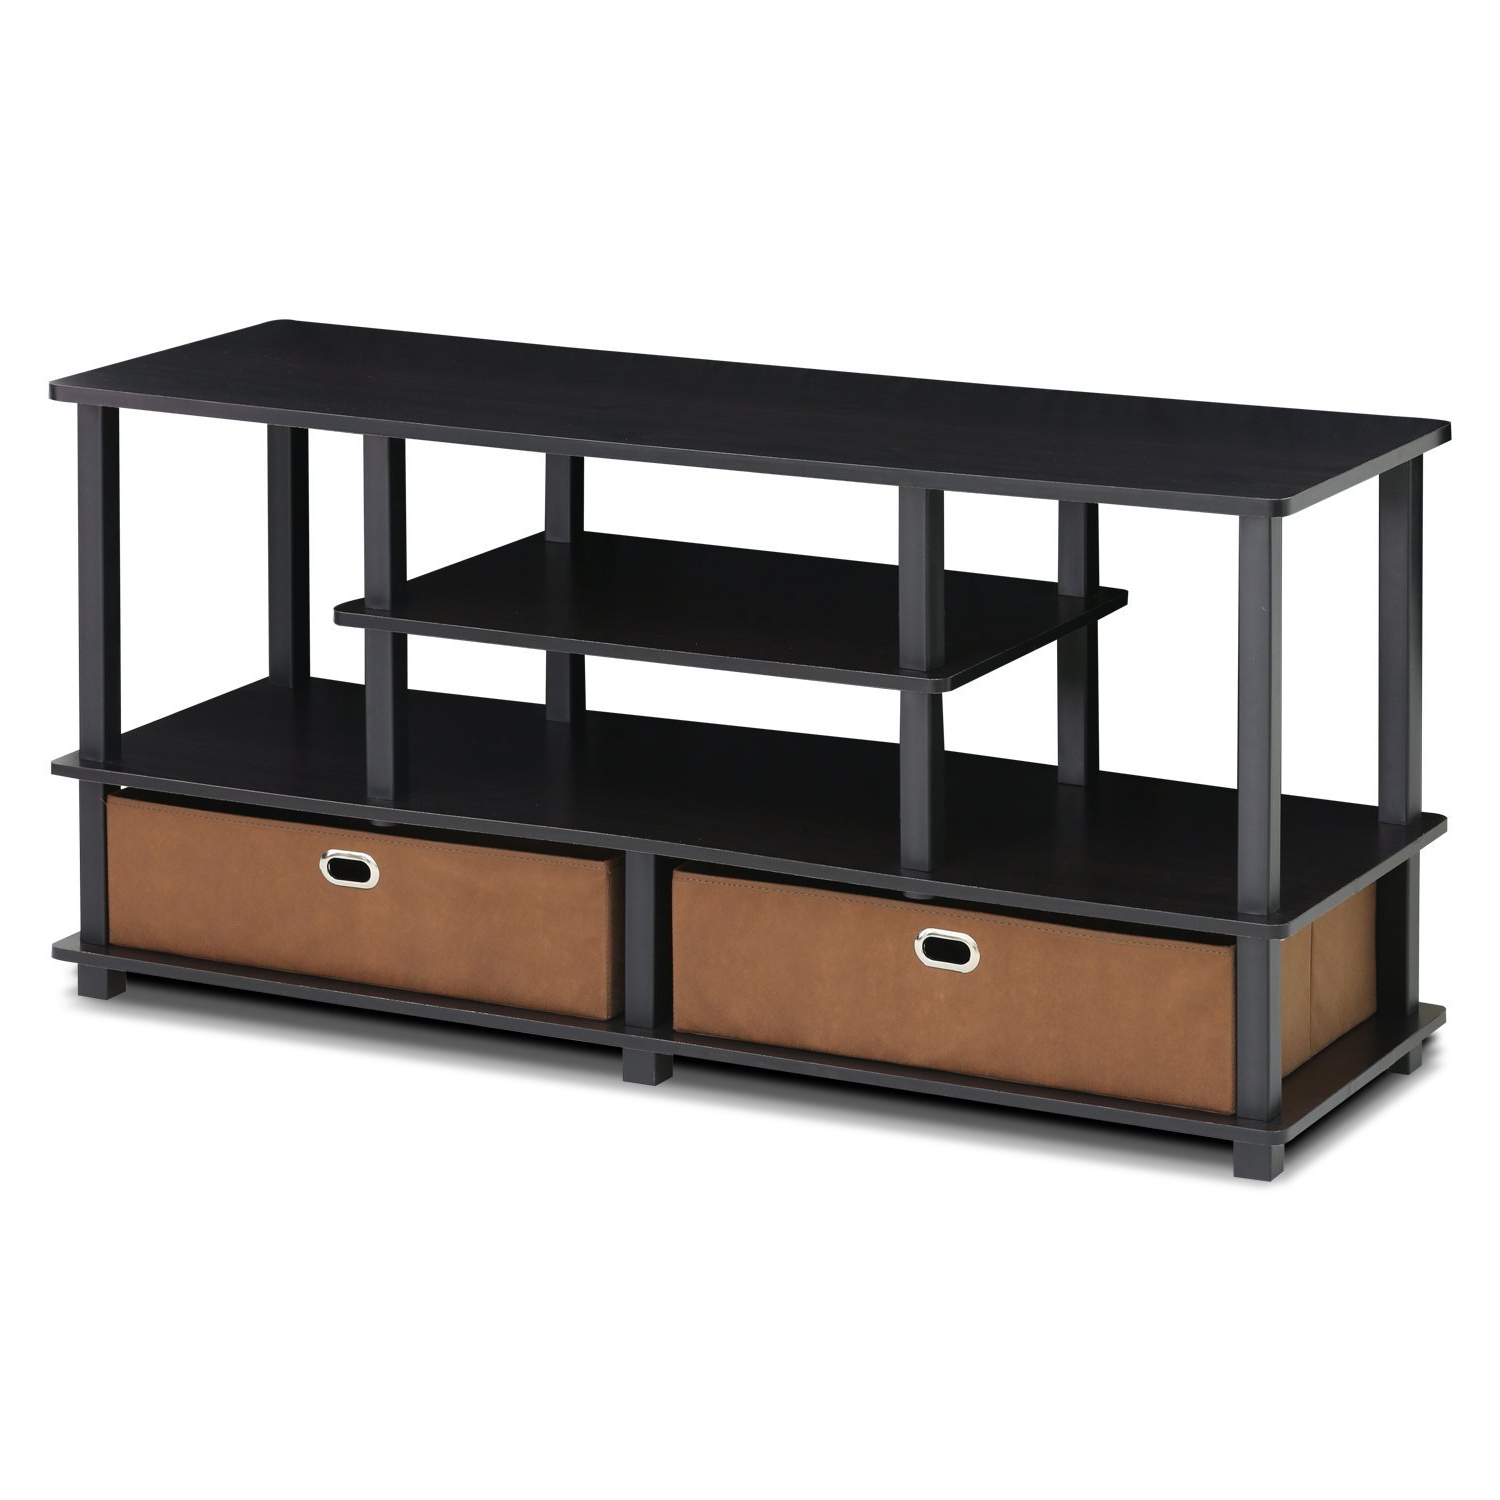 Furinno 15119exbkbr Jaya, Large Tv Stand For Up To 50 Inch With Regard To Furinno Jaya Large Entertainment Center Tv Stands (View 3 of 20)